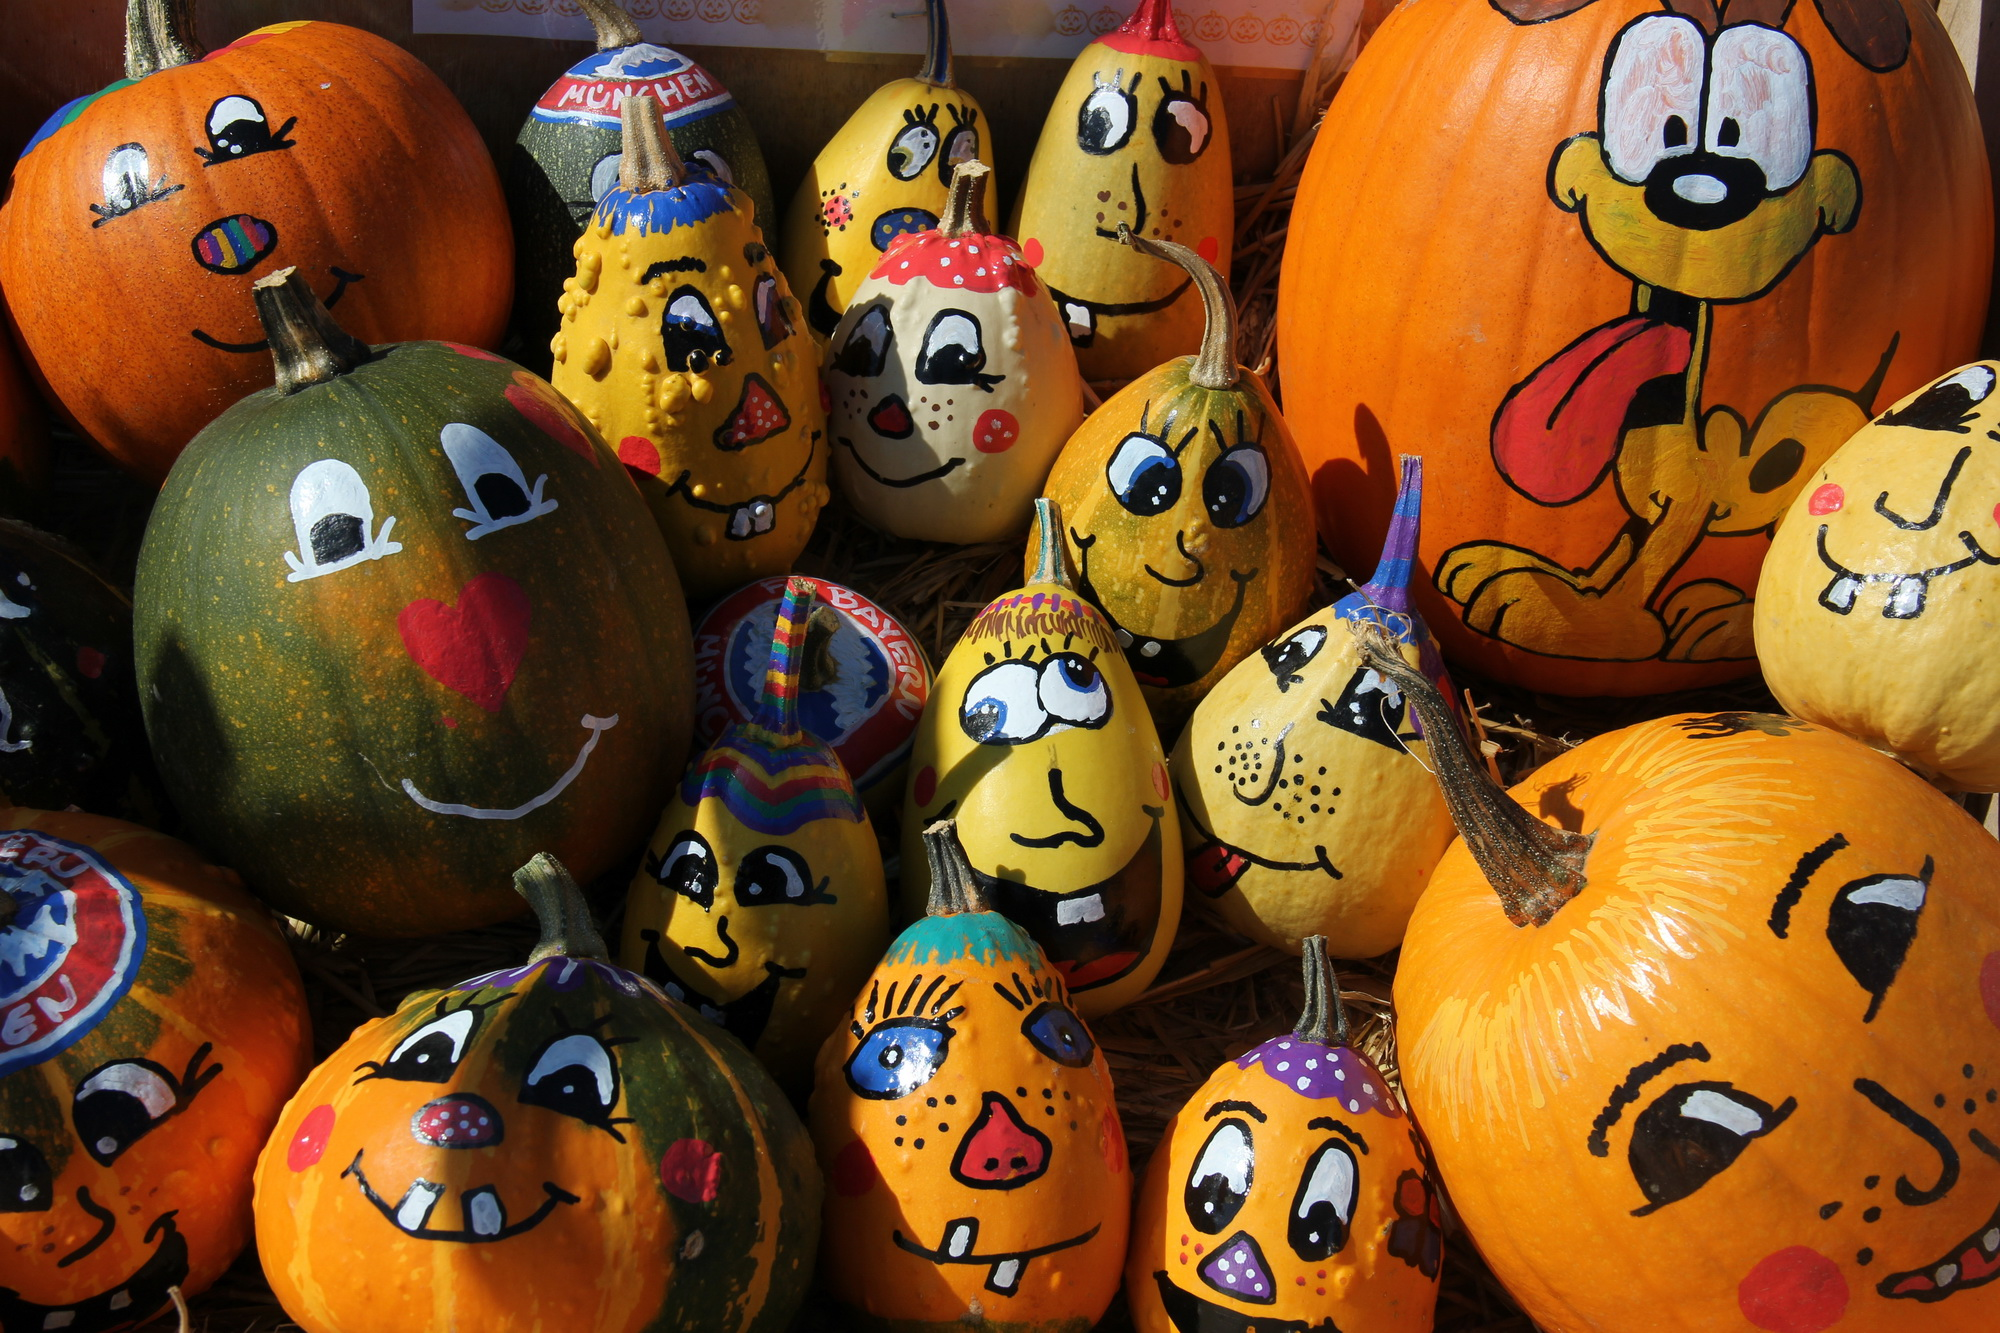 Campbell tintah school overview Funny pumpkin painting ideas